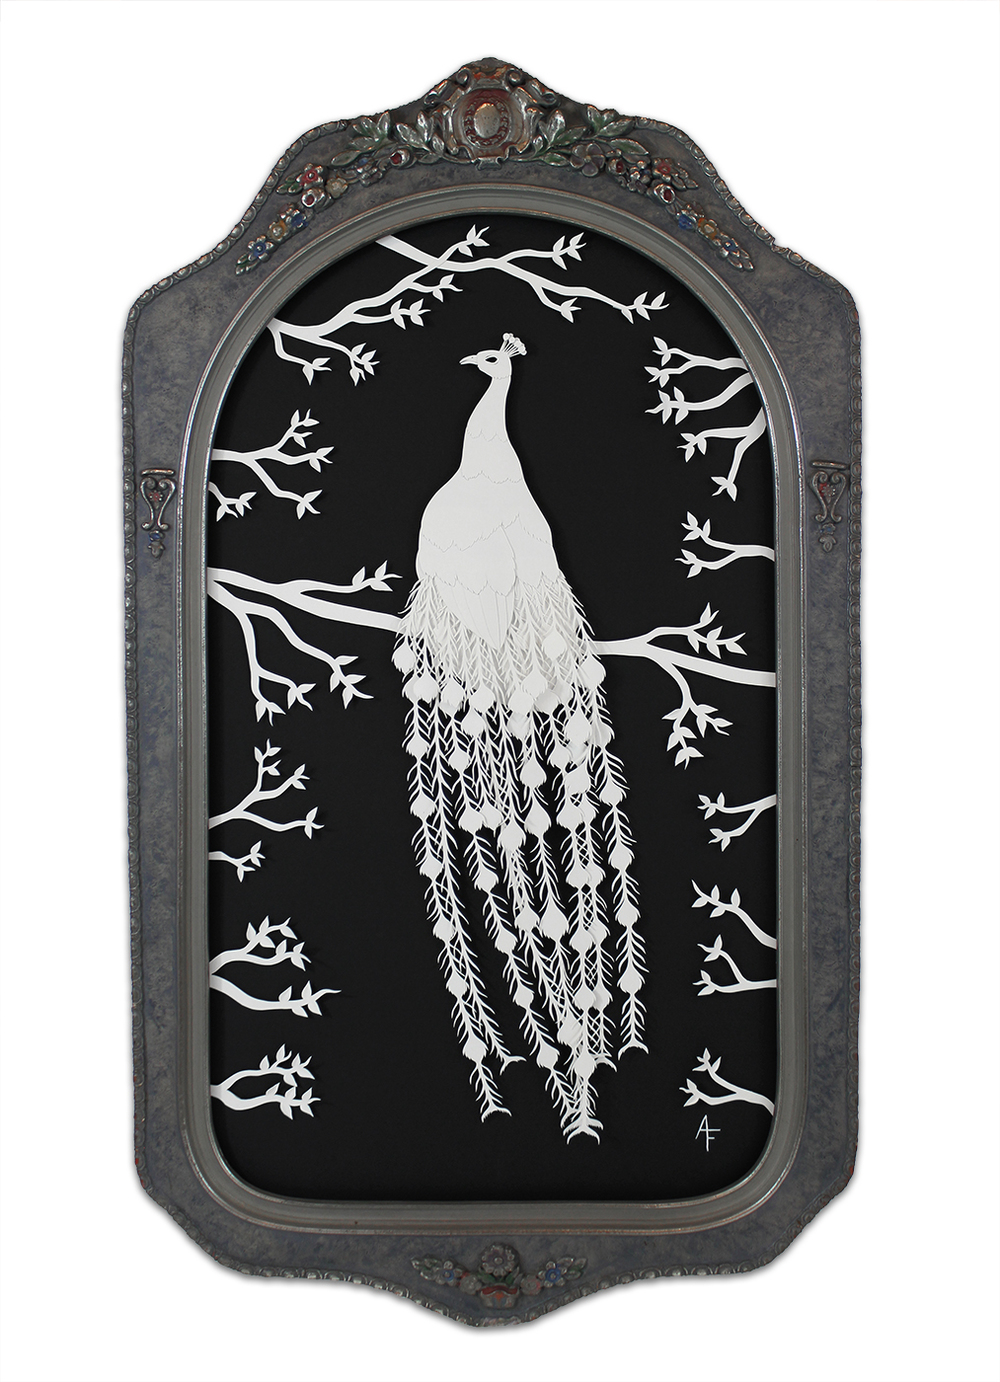 "Ashley Fisher, 'Pavo Cristatus', Paper Cut Out In Antique Frame, 10.5"" x 18.5"""